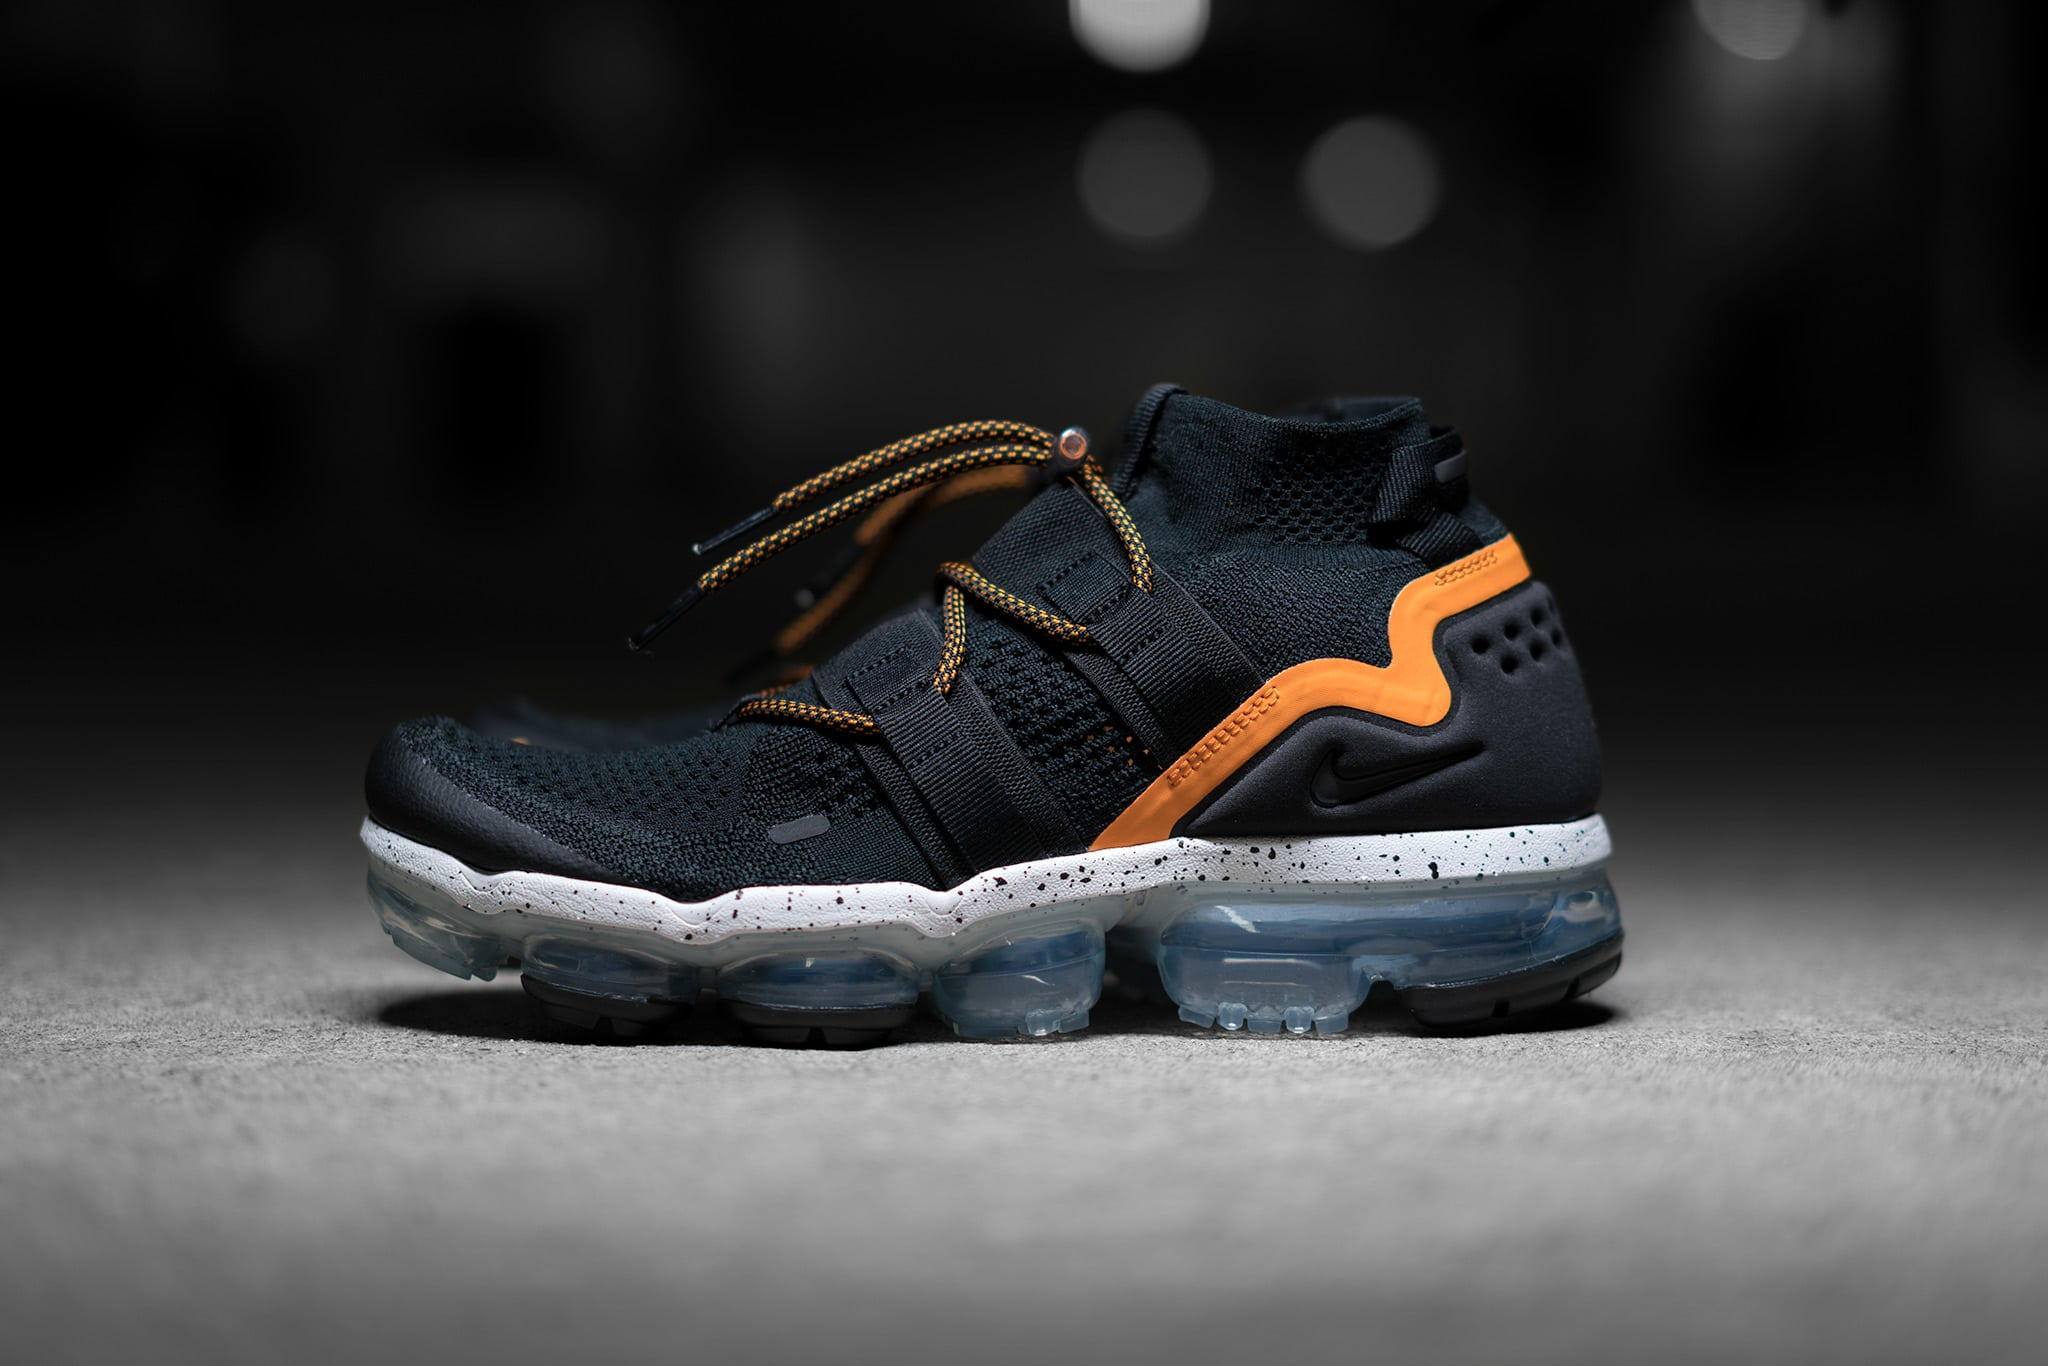 save off 6fa19 83cba Nike Air Vapormax Flyknit Utility Black / Orange | Now Available